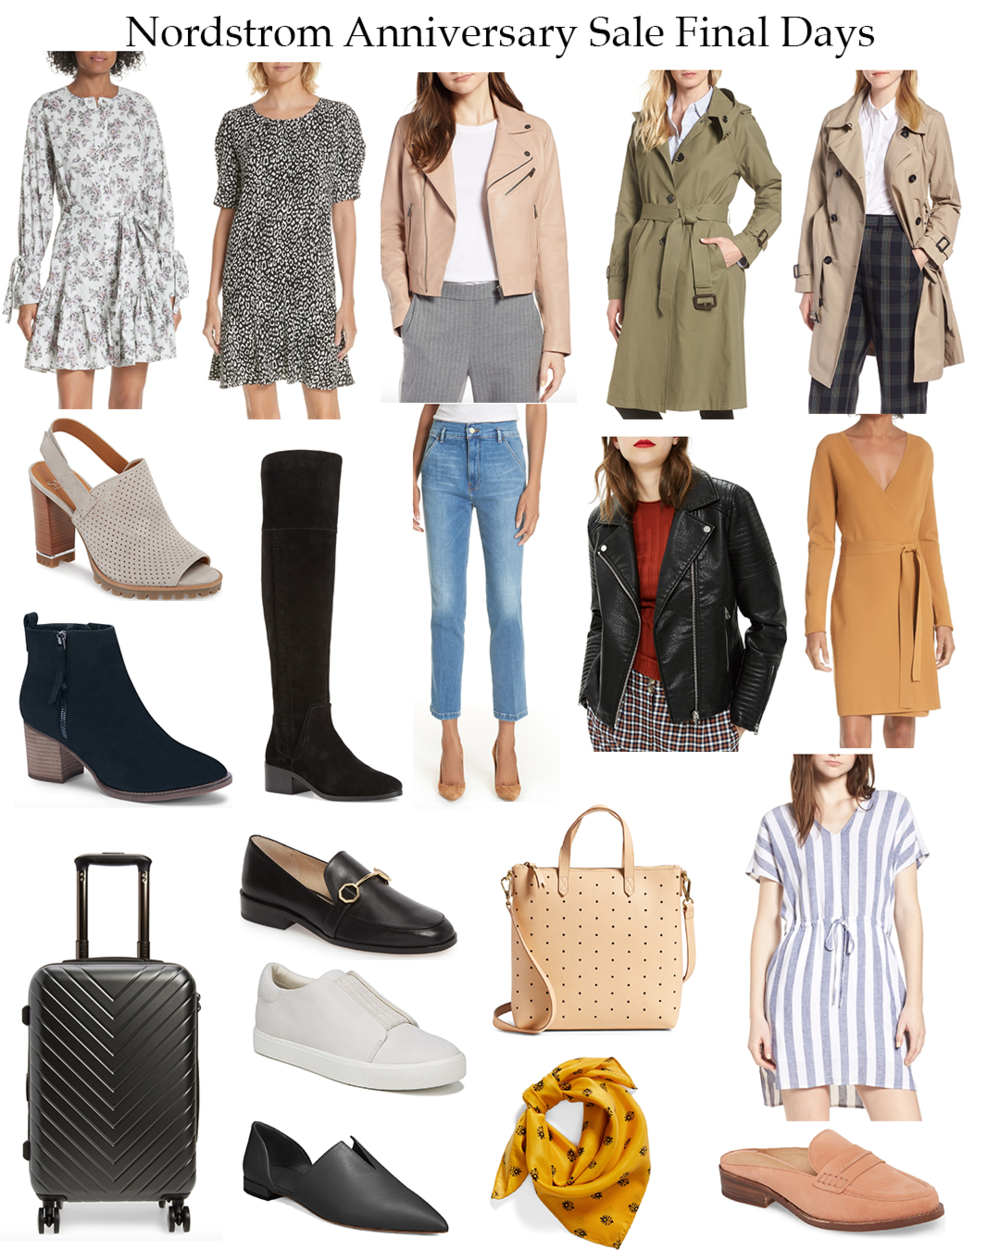 2018 nordstrom anniversary sale final days